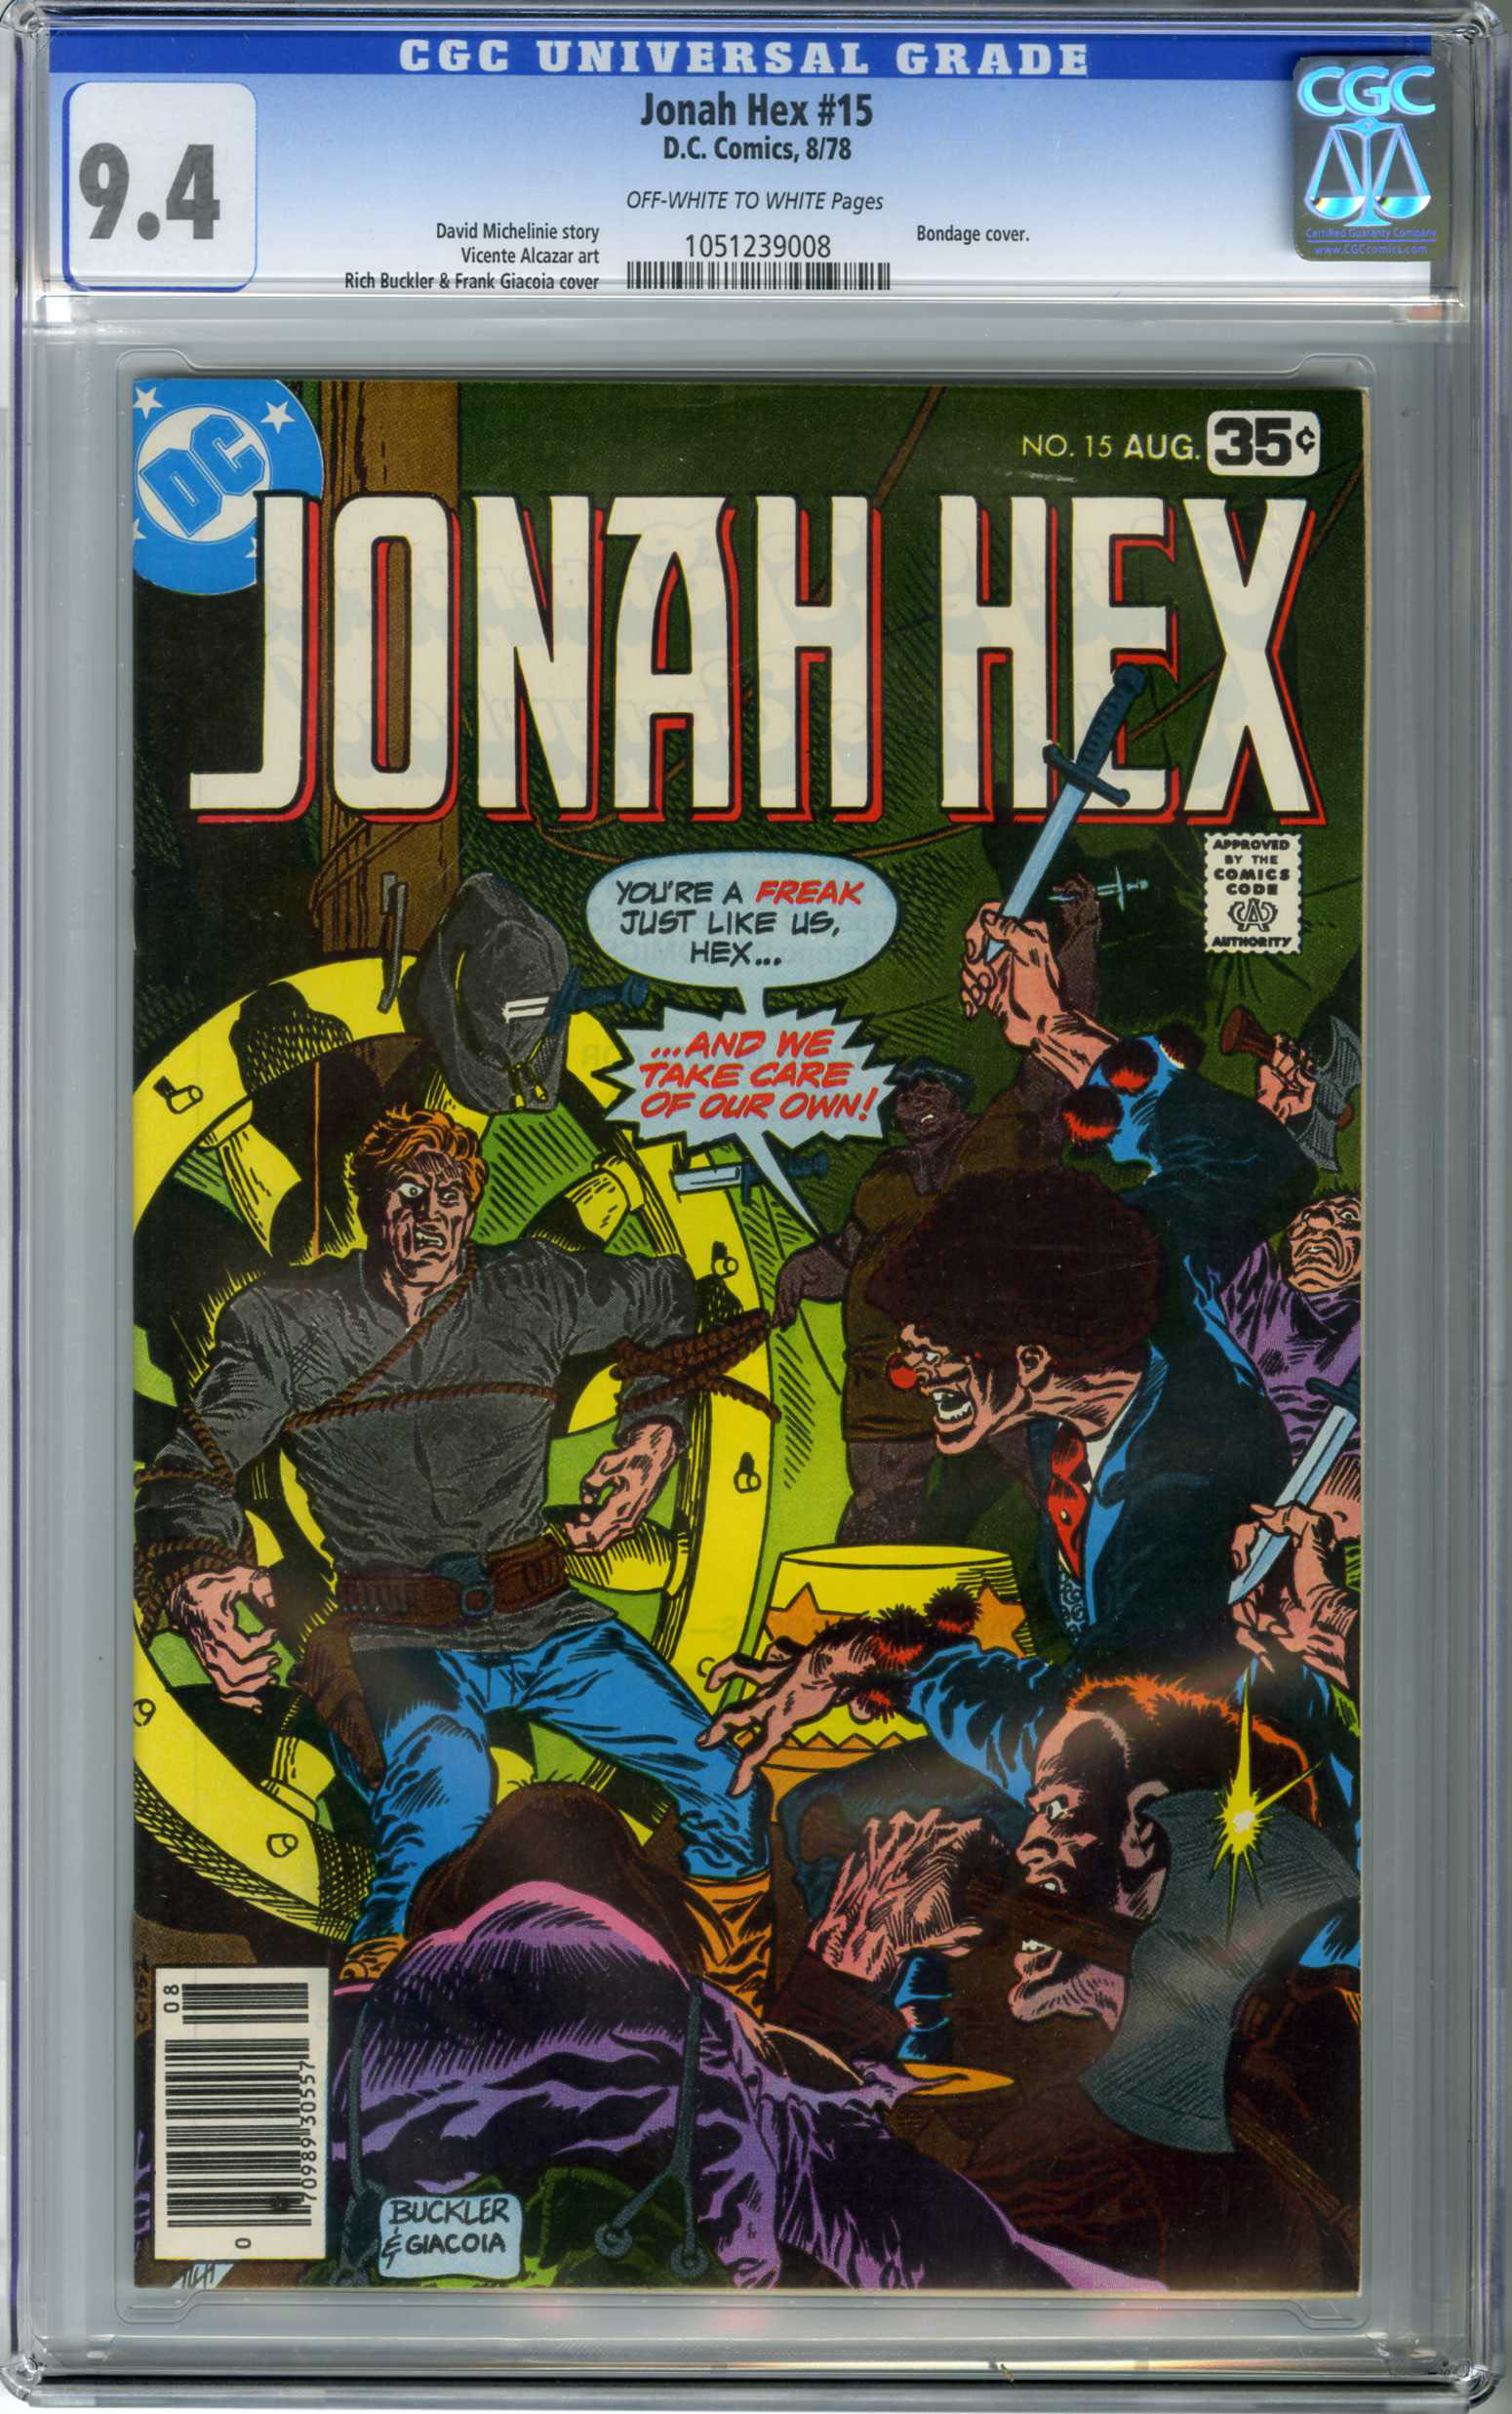 JONAH HEX #15 (1978) CGC NM 9.4 OWW Pages RICH BUCKLER CVR / BONDAGE COVER